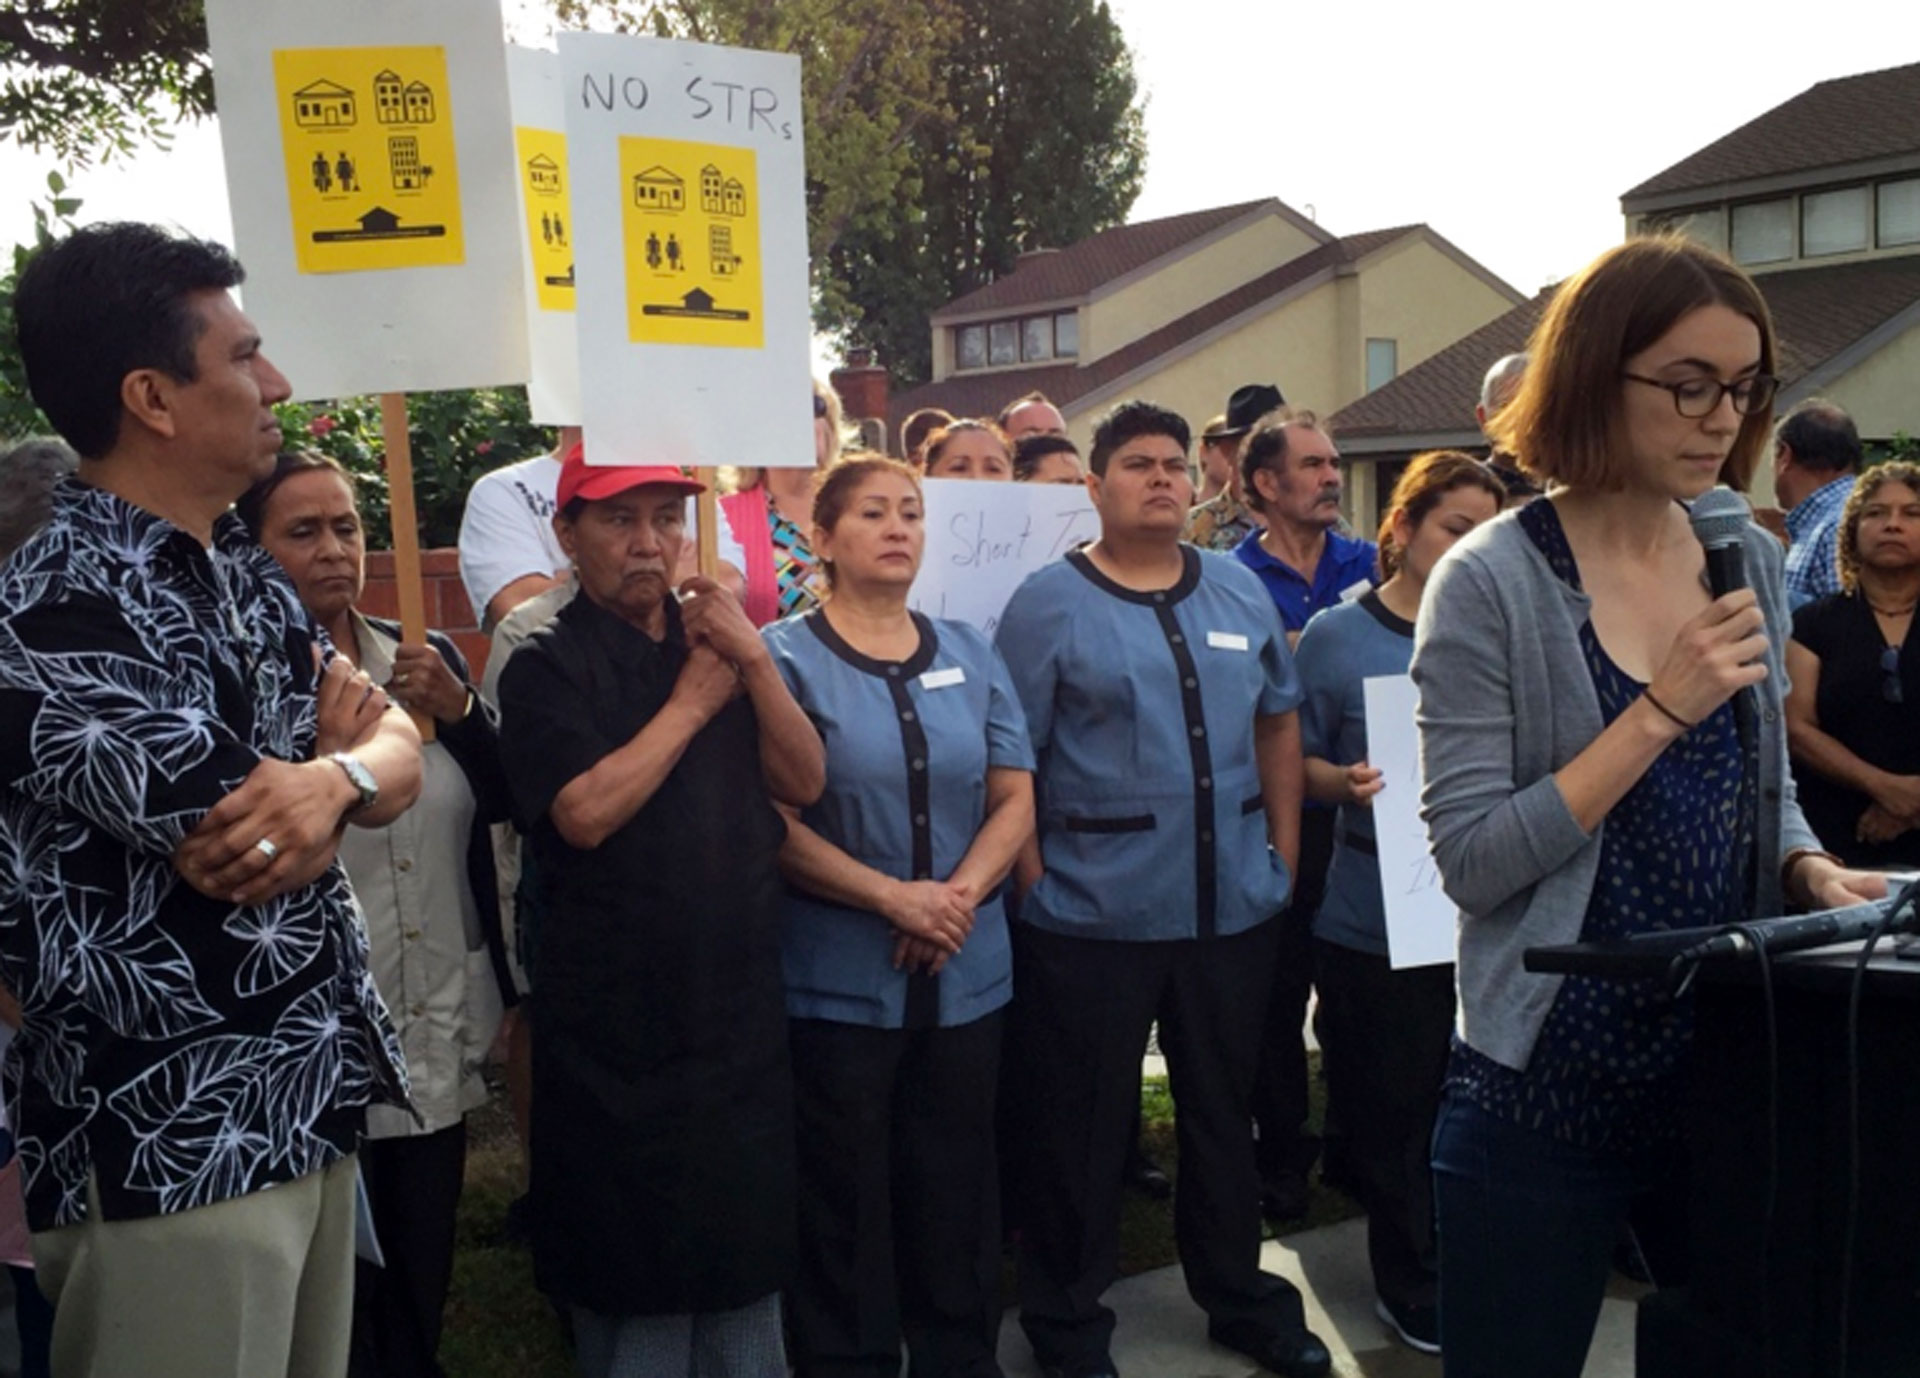 Hotel union workers attend a press conference Monday in a South Anaheim neighborhood organized by an Orange County community activist group petitioning officials to ban short-term rentals.